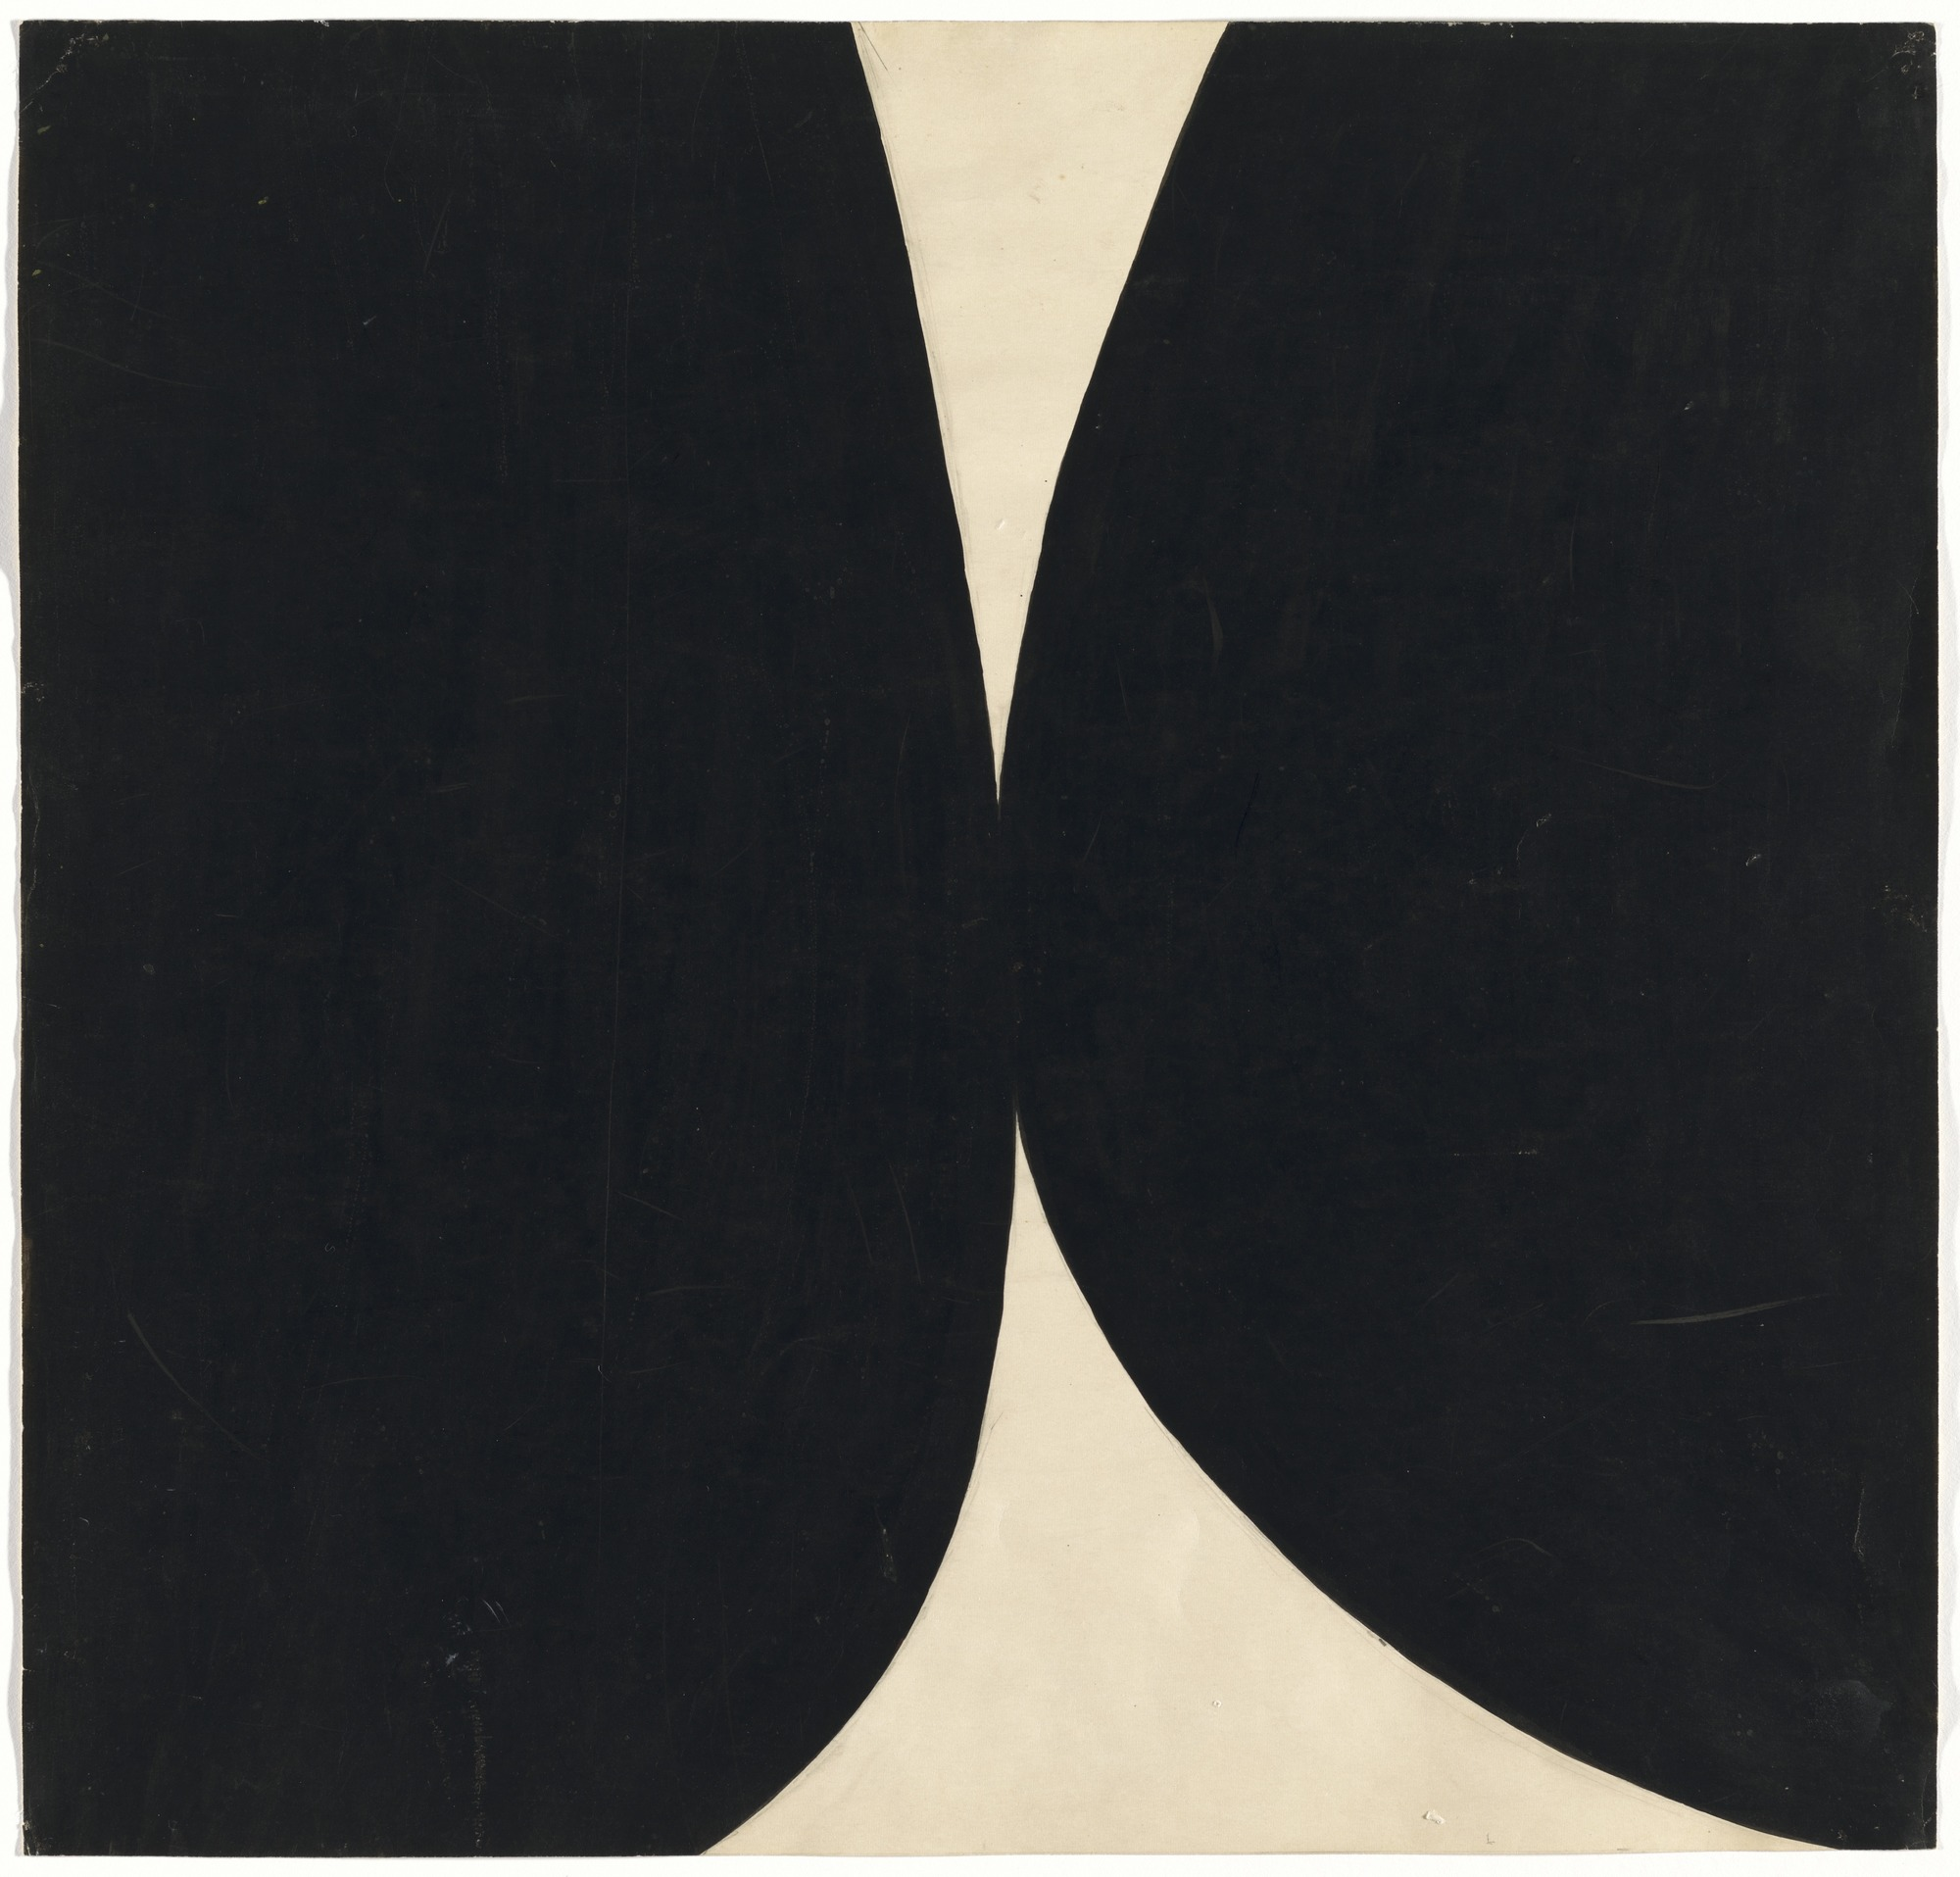 Ellsworth Kelly: Black & White Works